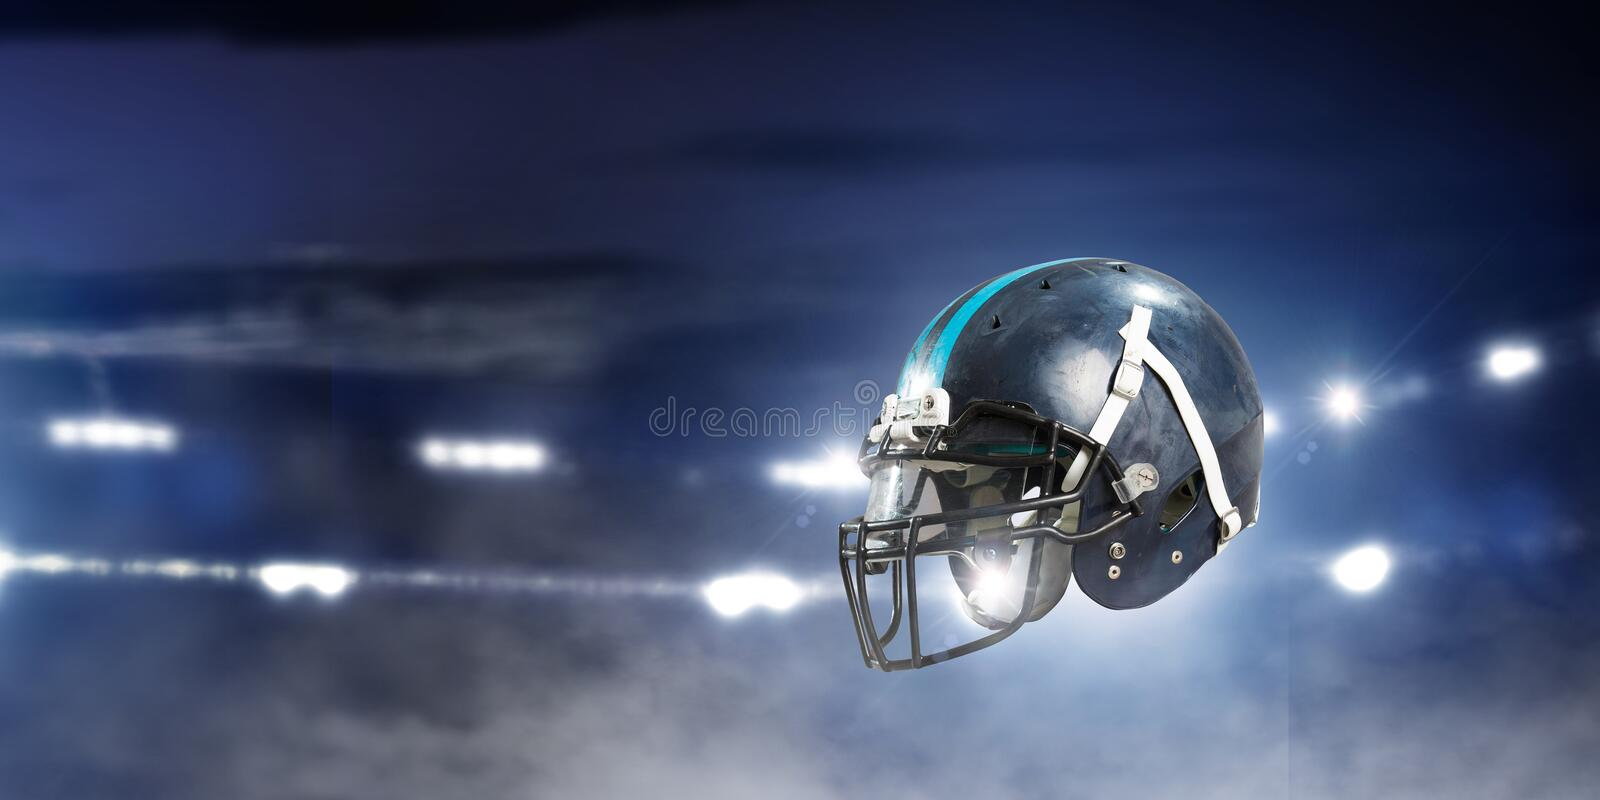 It is game time. Mixed media. American football helmet against rugby stadium. Mixed media stock image